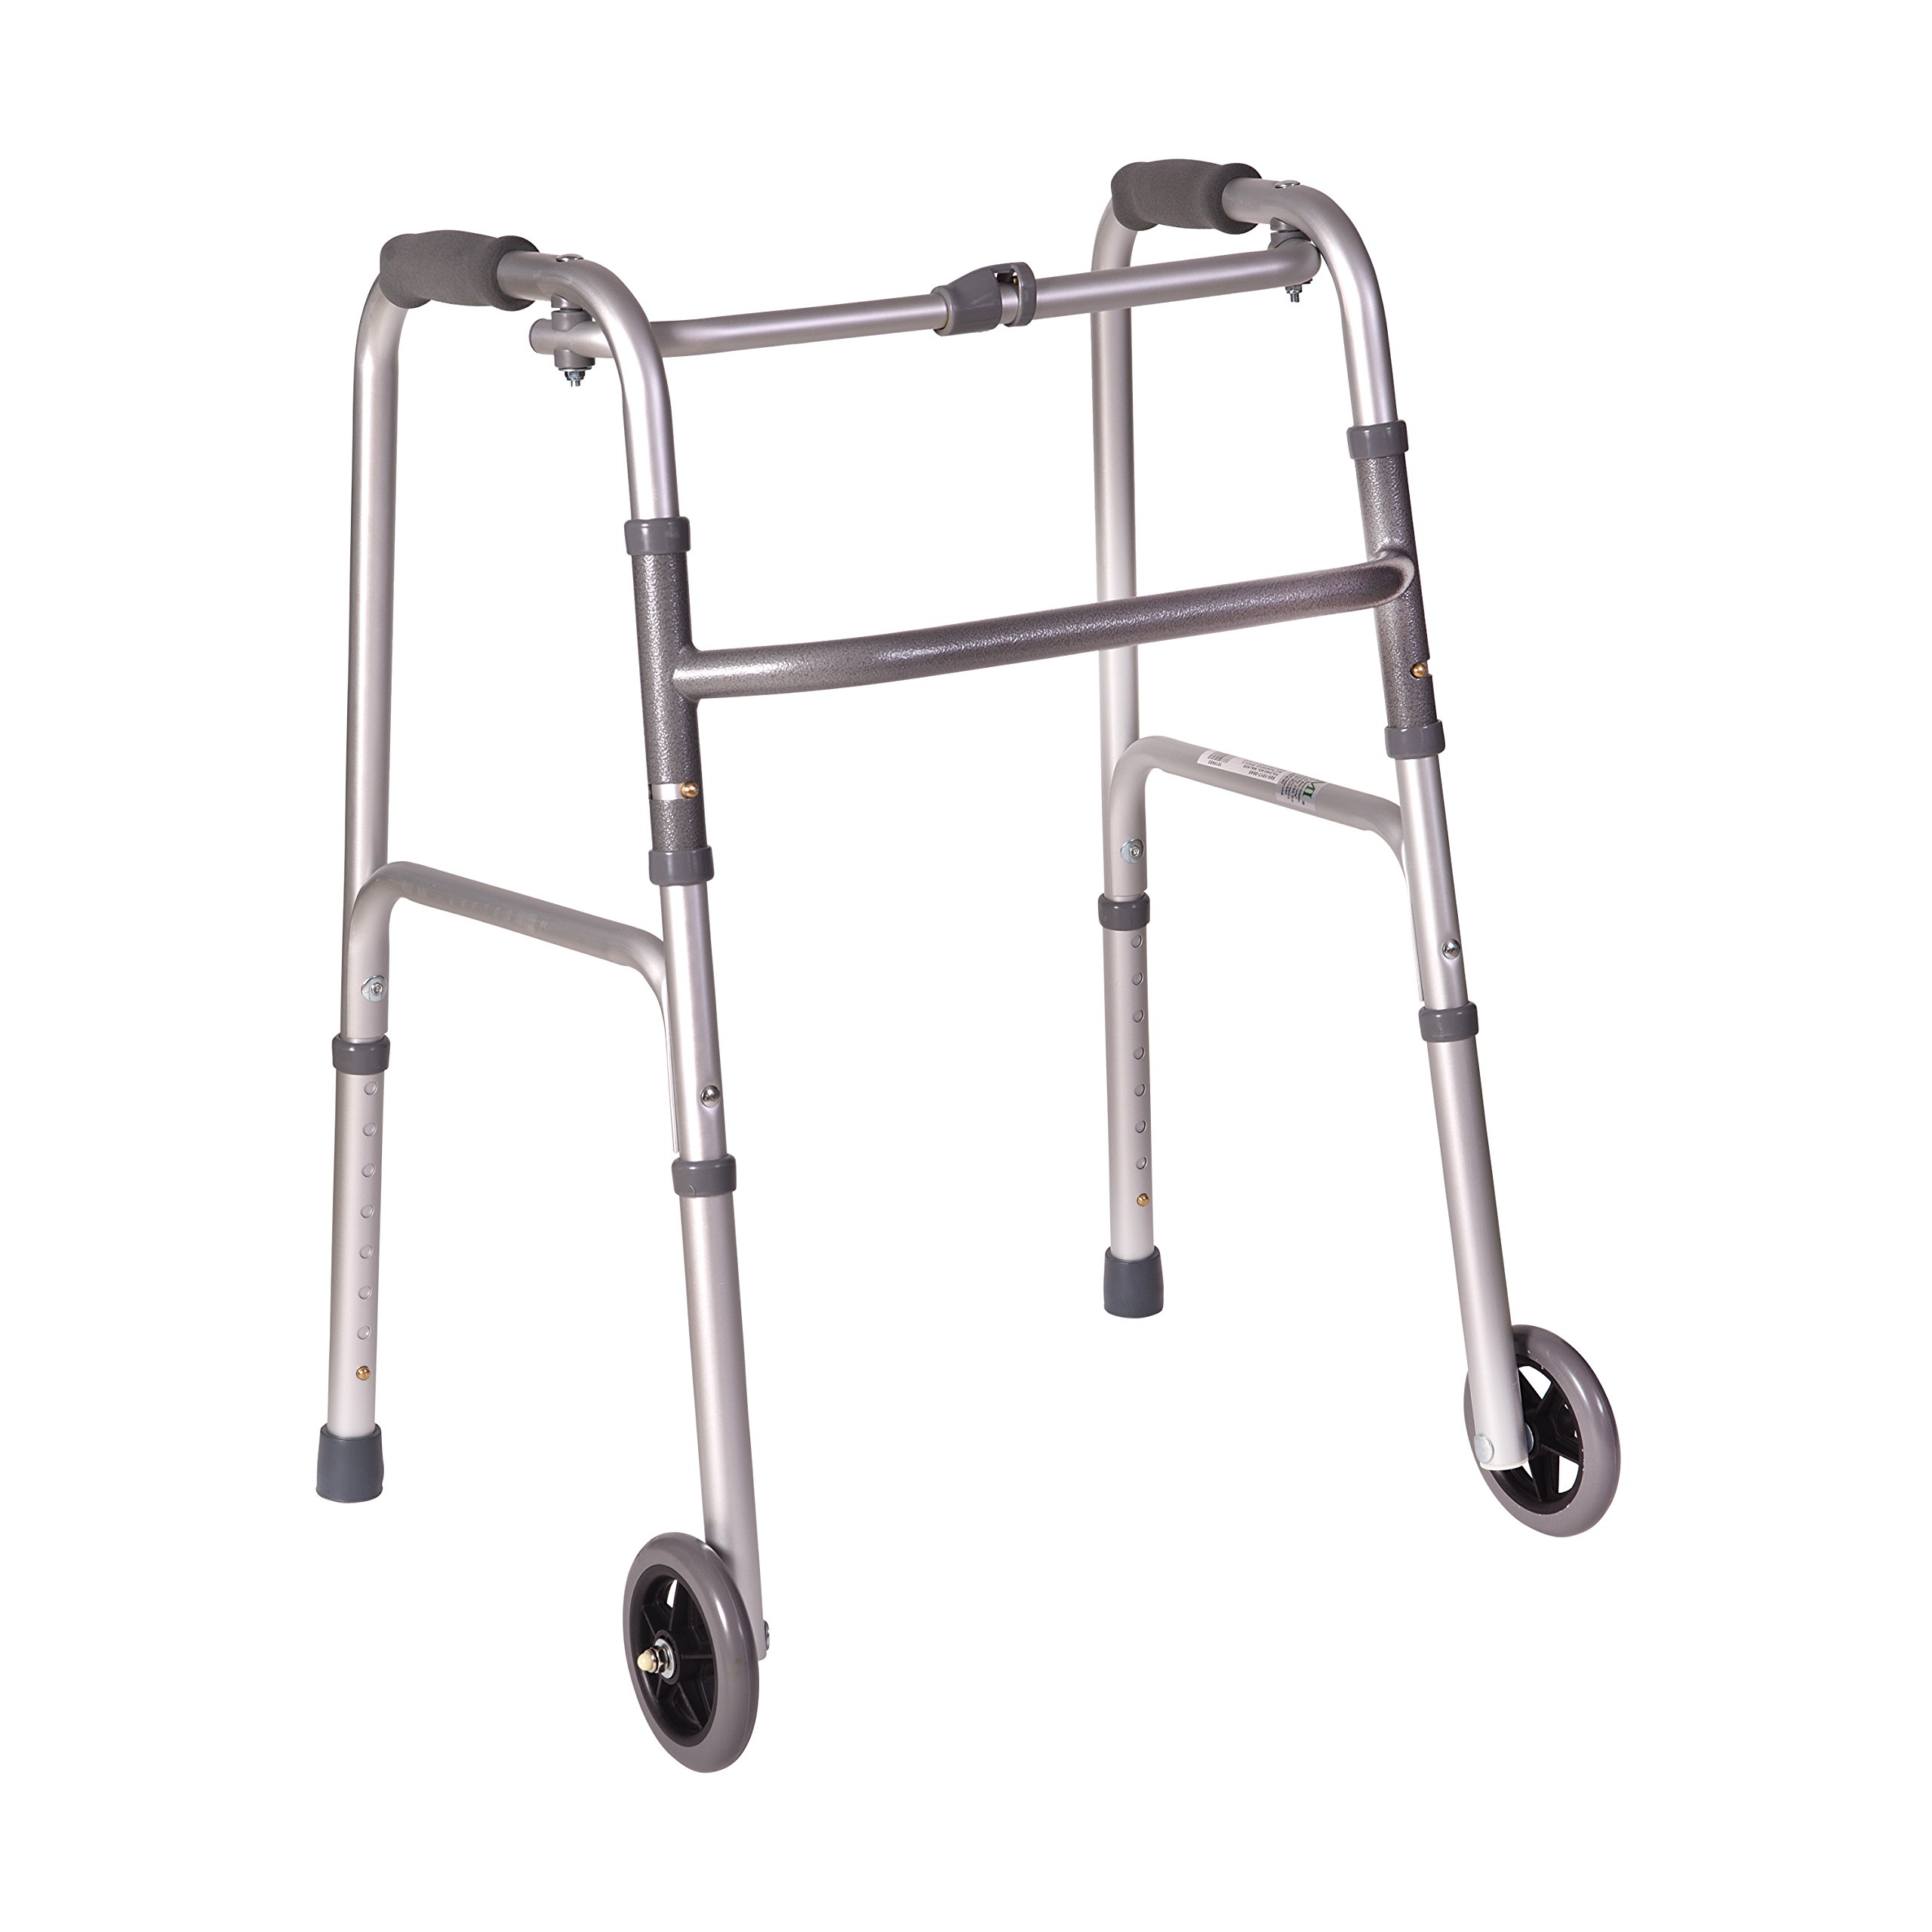 DMI Lightweight Aluminum Folding Walker with Single Release, 5 Inch Wheels, Adjustable Height, No Assembly Needed, Silver, 250 lbs by Duro-Med